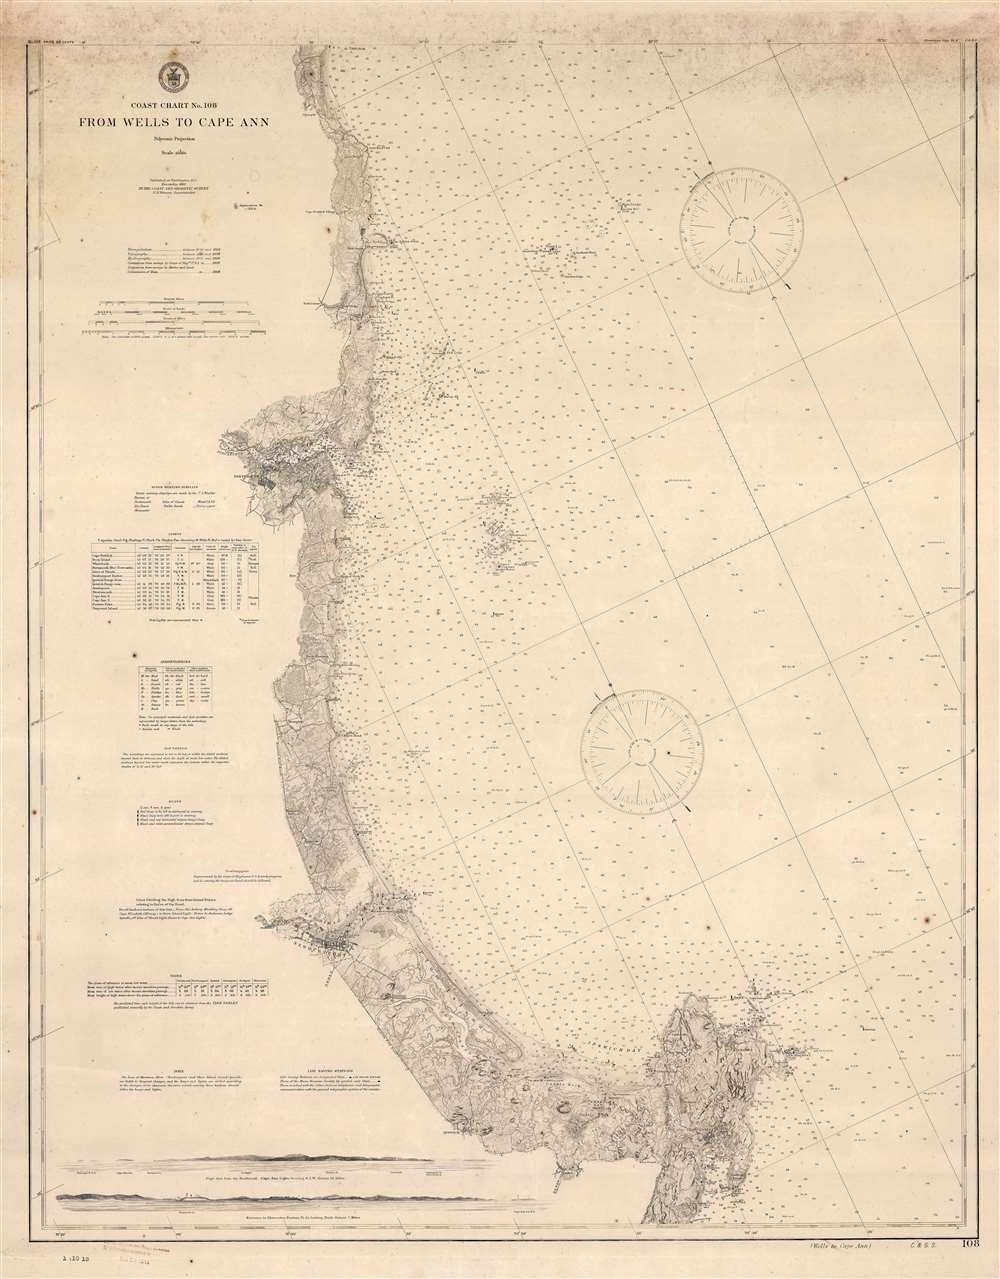 Coast Chart No. 108 From Wells to Cape Ann. - Main View